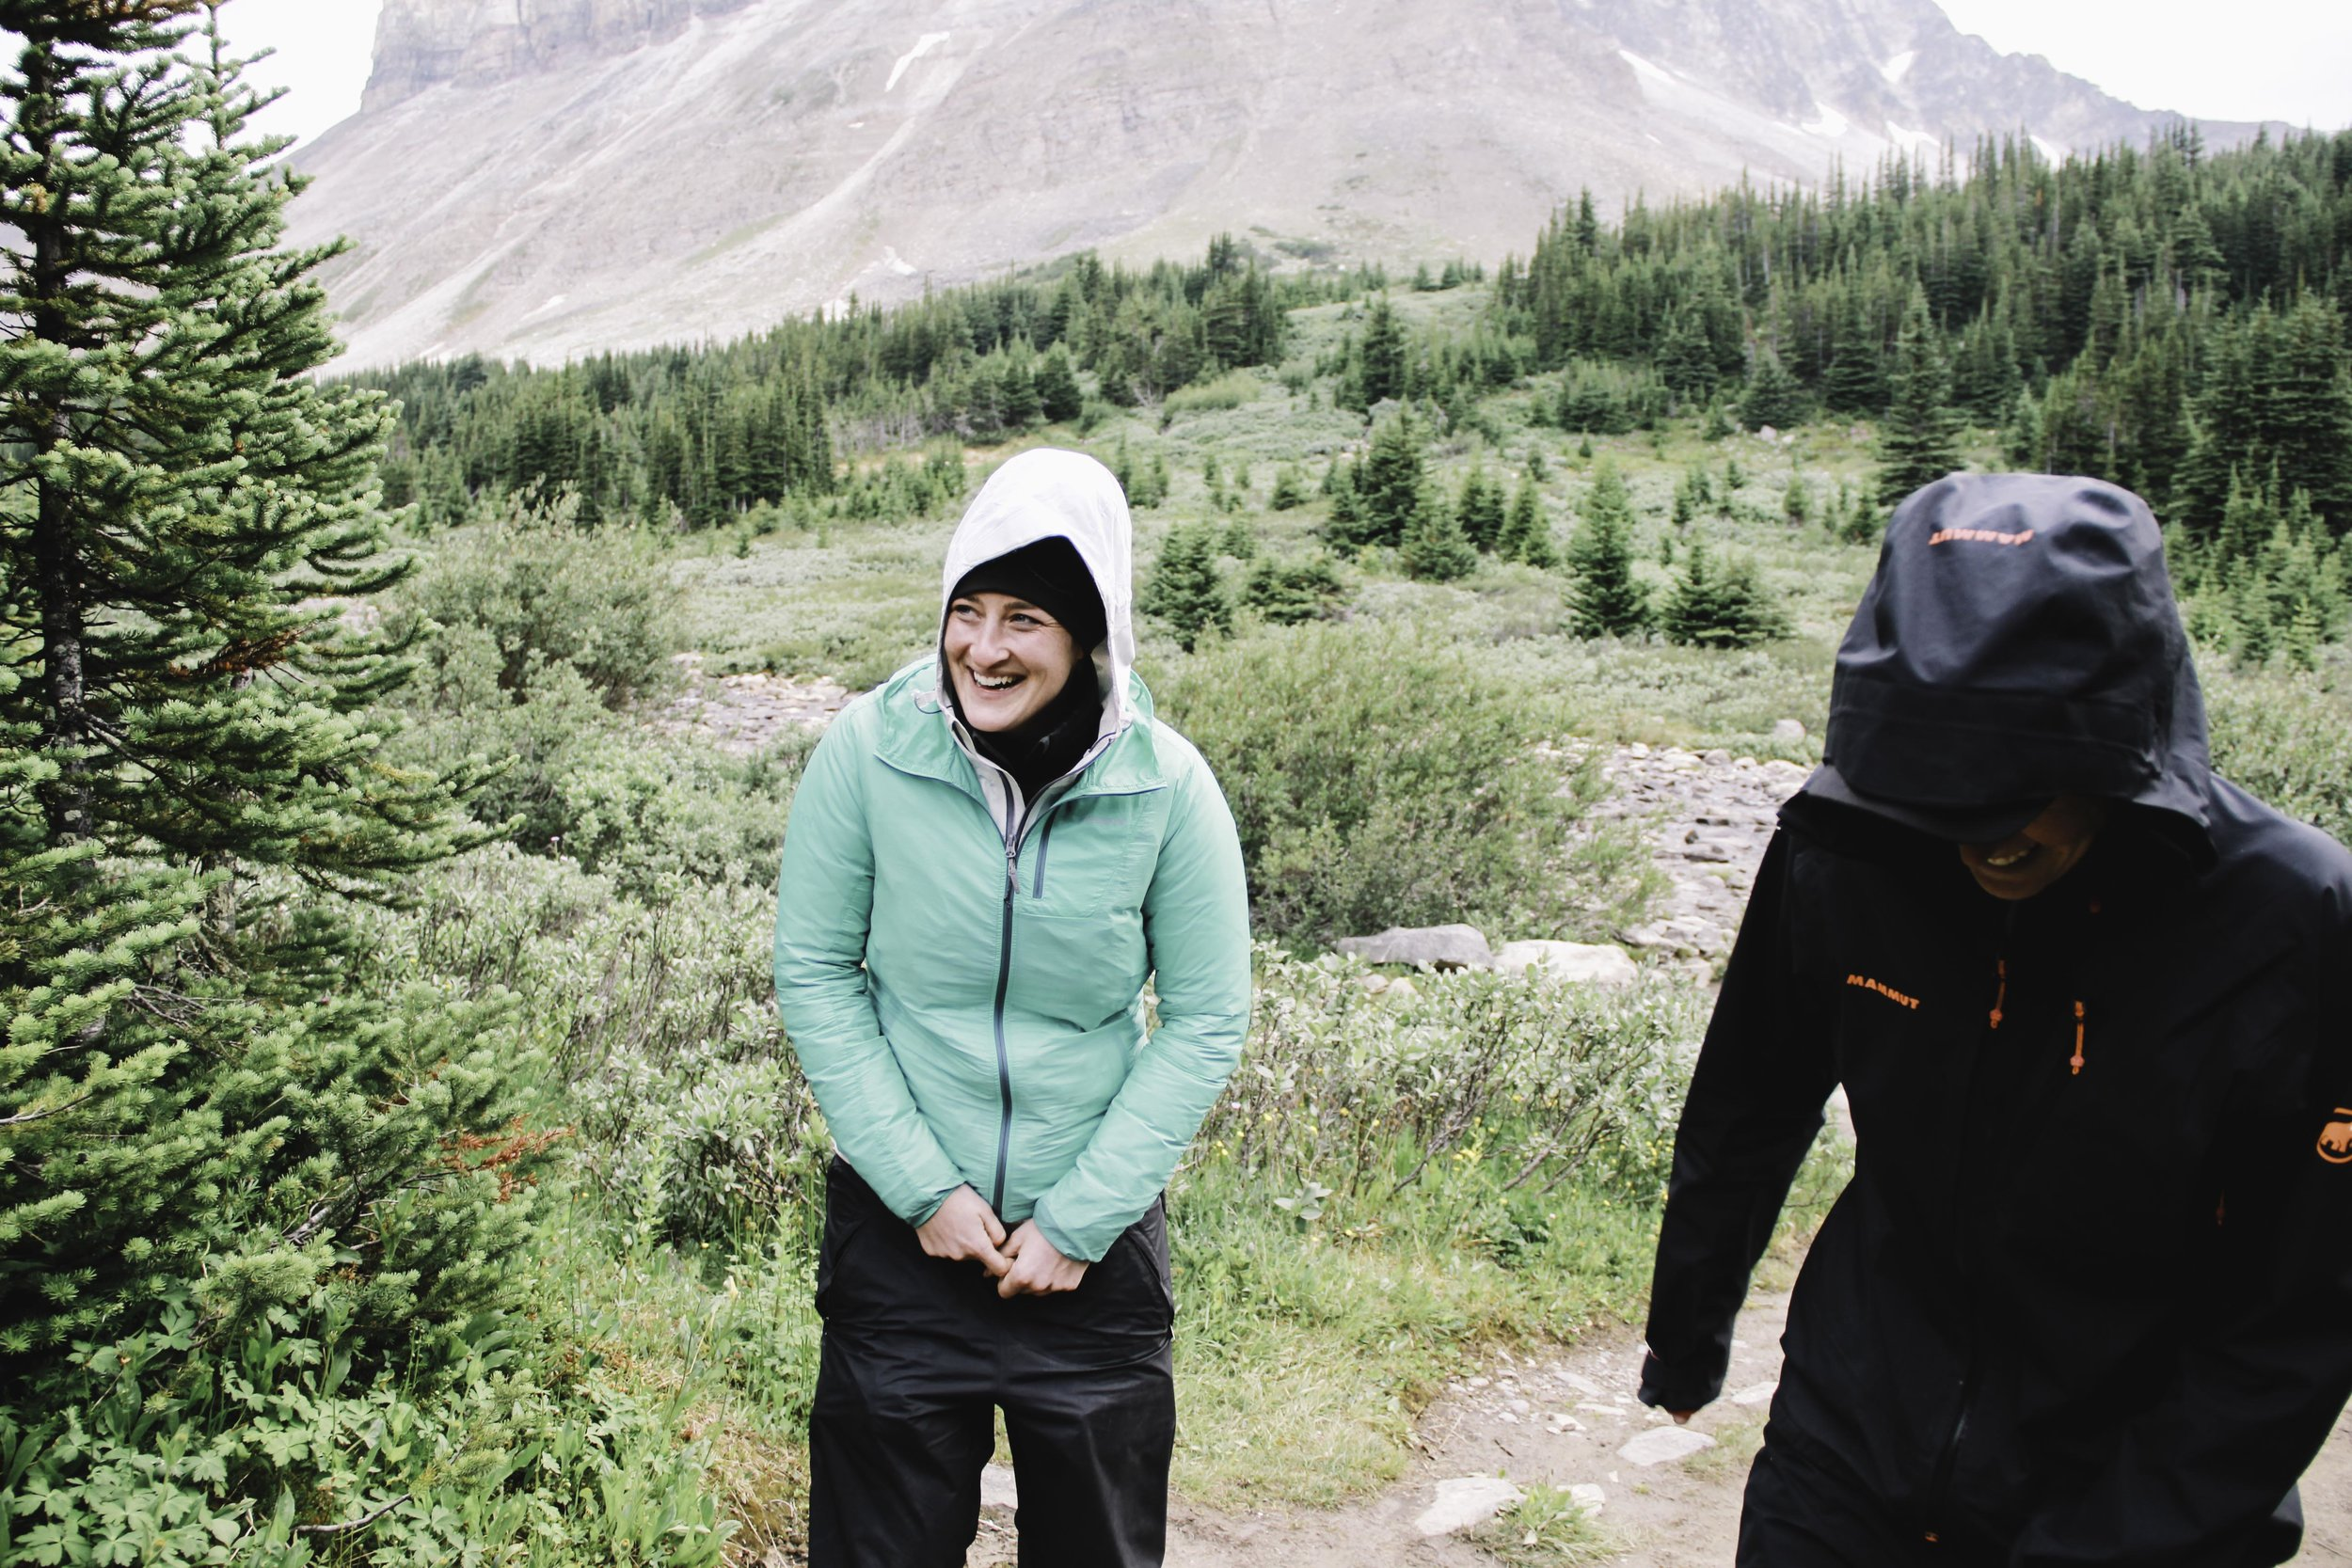 Hiking the Skyline Trail | Beyond Ordinary Guides-97.jpg